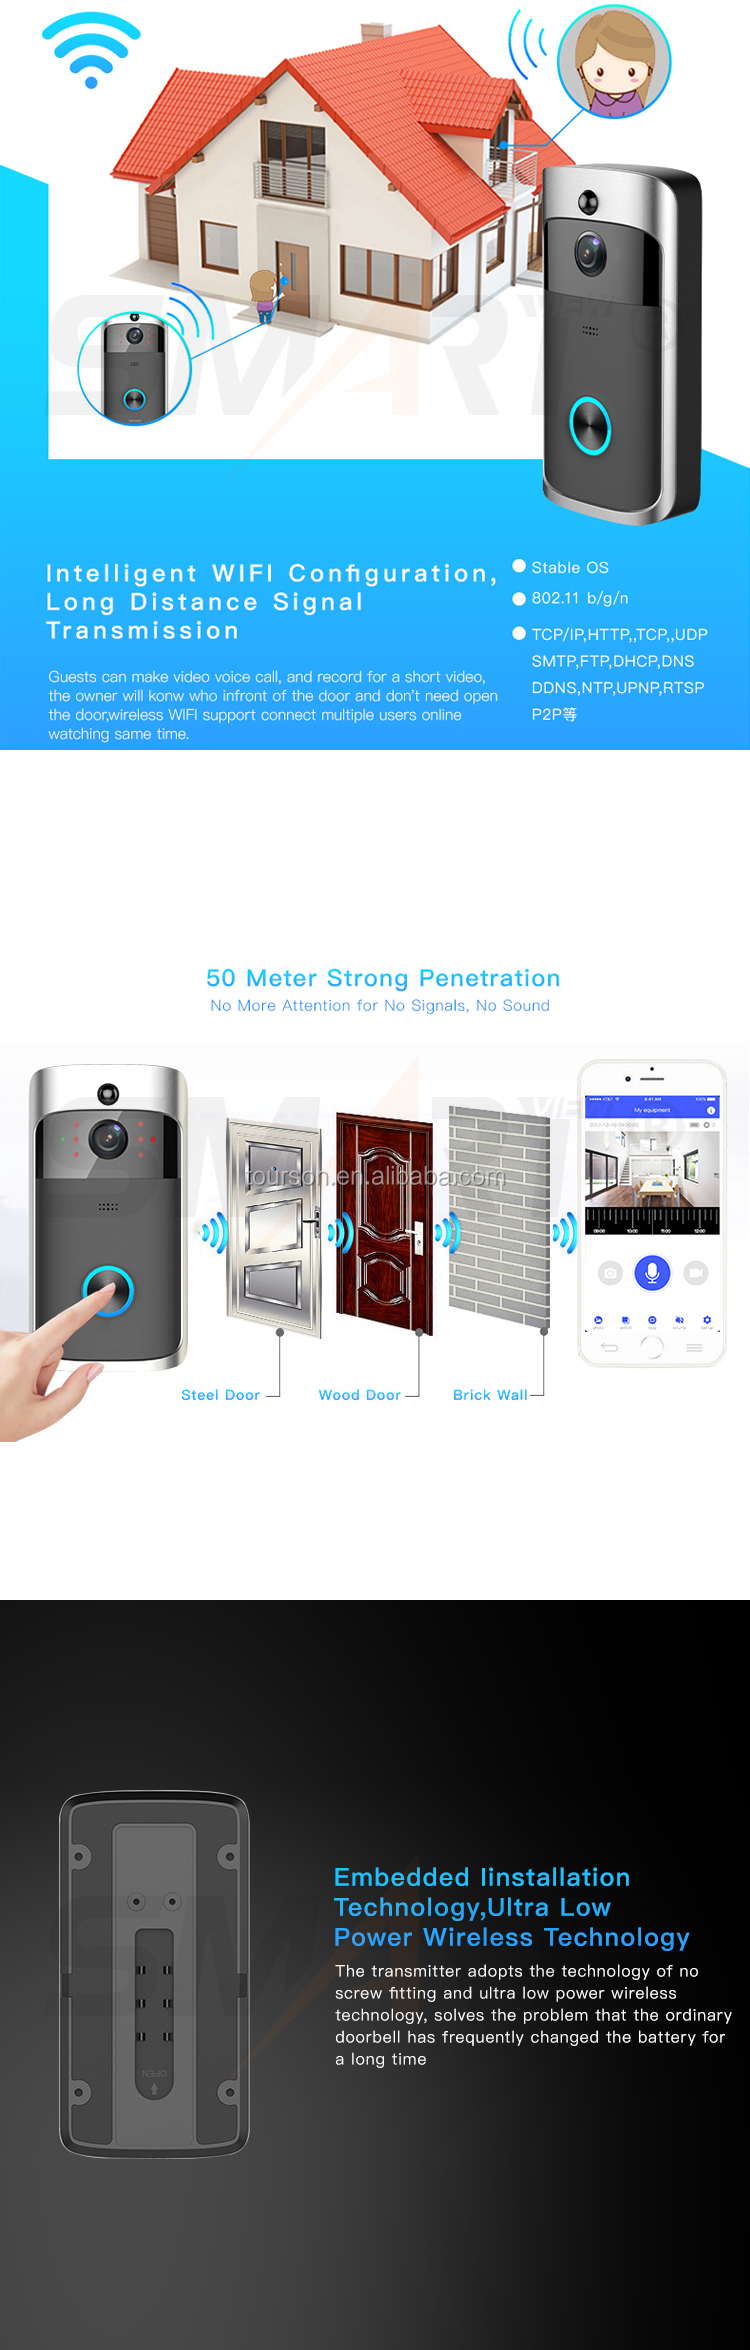 Hd 720p P2p App Smart Home Monitor Intercom Wifi Video Doorbell With 32gb  Card,Dingdong,2pcs Batteries - Buy Wifi Video Doorbell,Video Doorbell